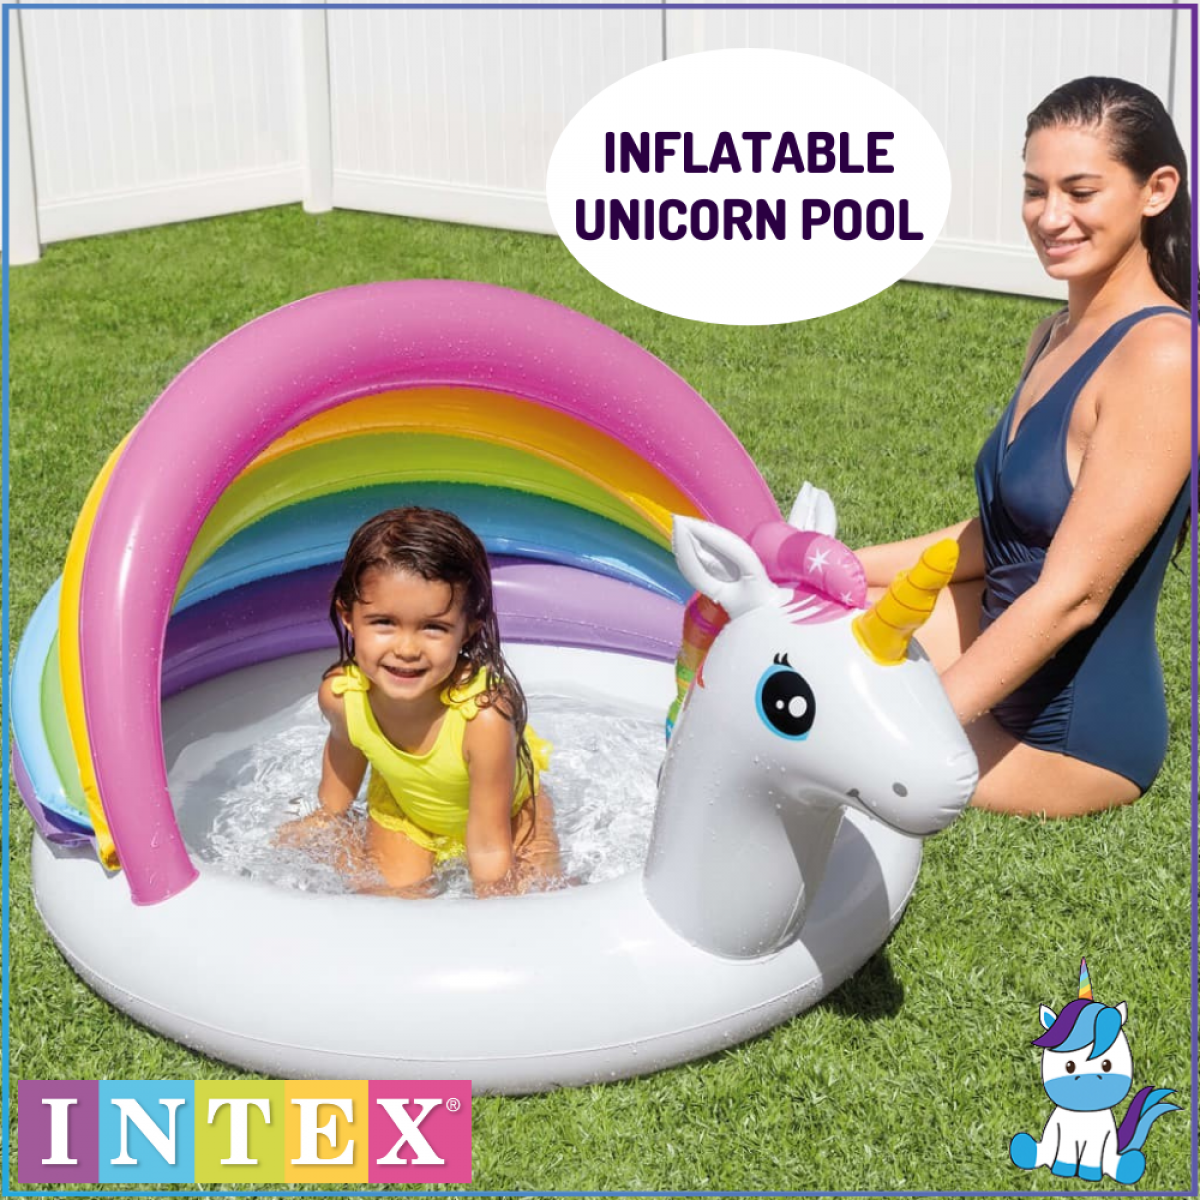 Intex Children Inflatable Pool or Ride-On - Swimming Pool / Baby Pool / Baby Float - Kids Outdoor Play